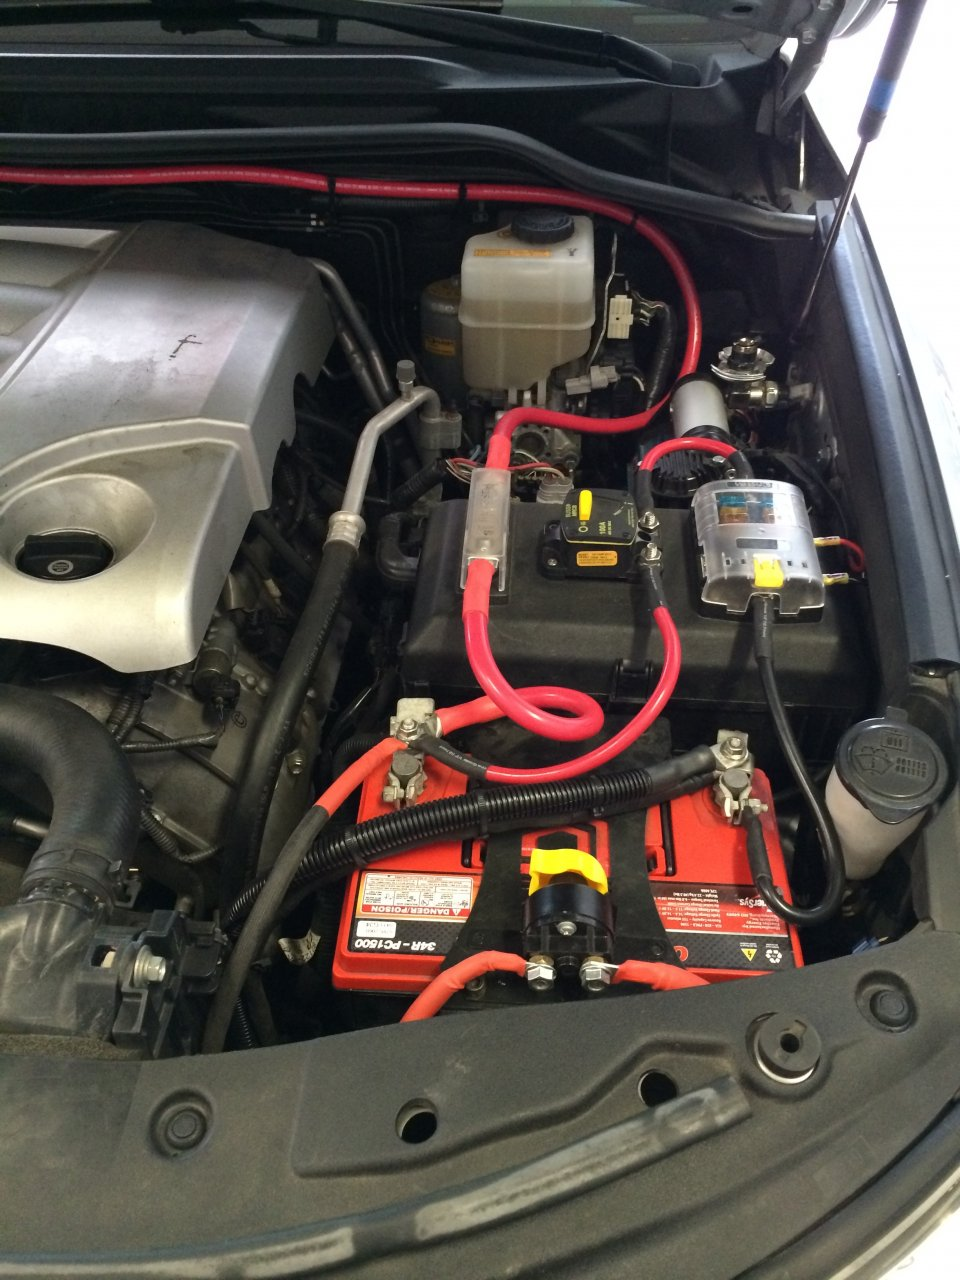 Tundra Wiring Diagram Dual Battery Install Complete Ih8mud Forum